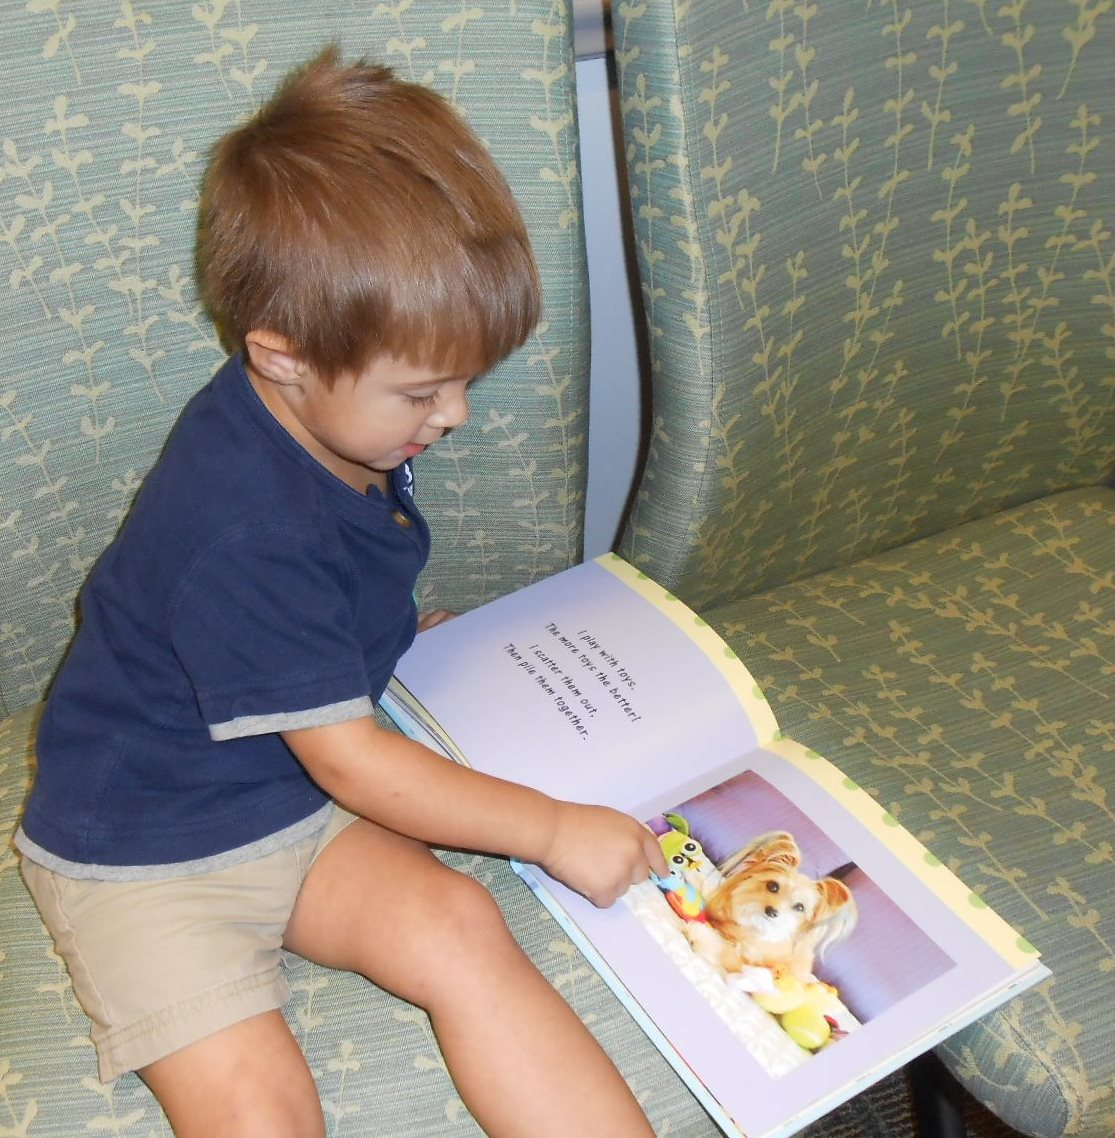 JB_Toddler reads Jeanie Book